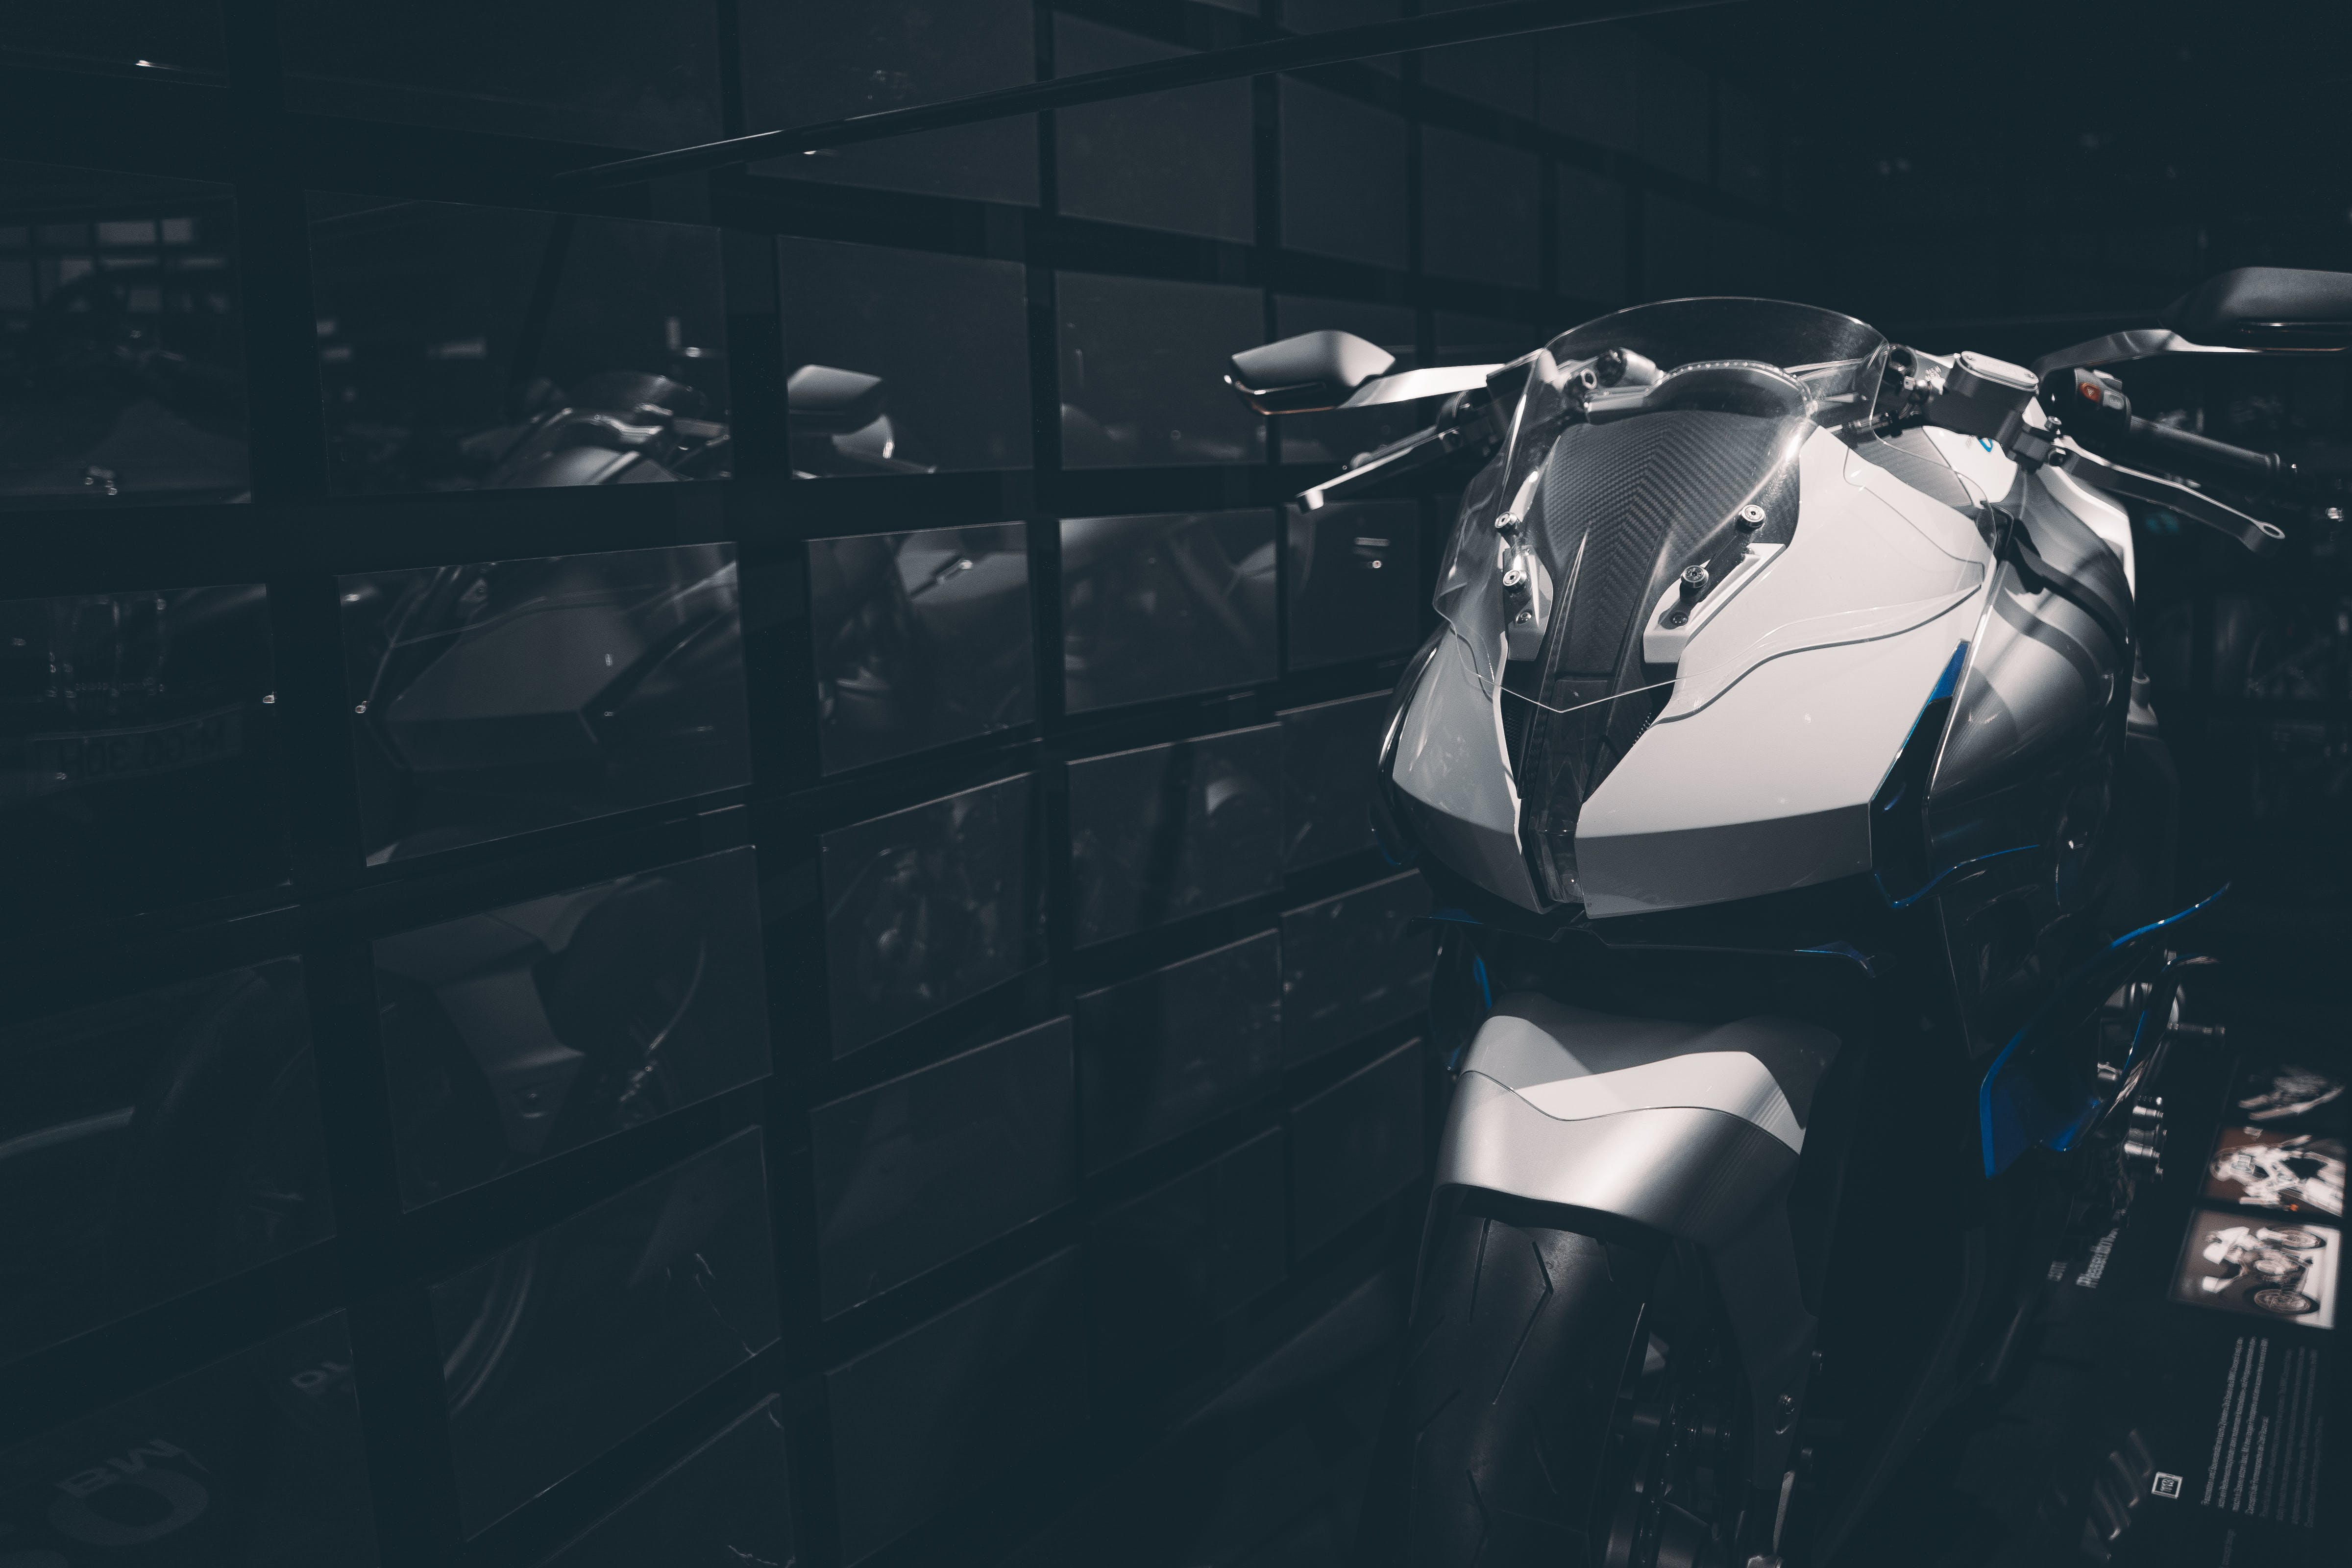 Shallow Focus Photography of Silver and Black Sports Bike